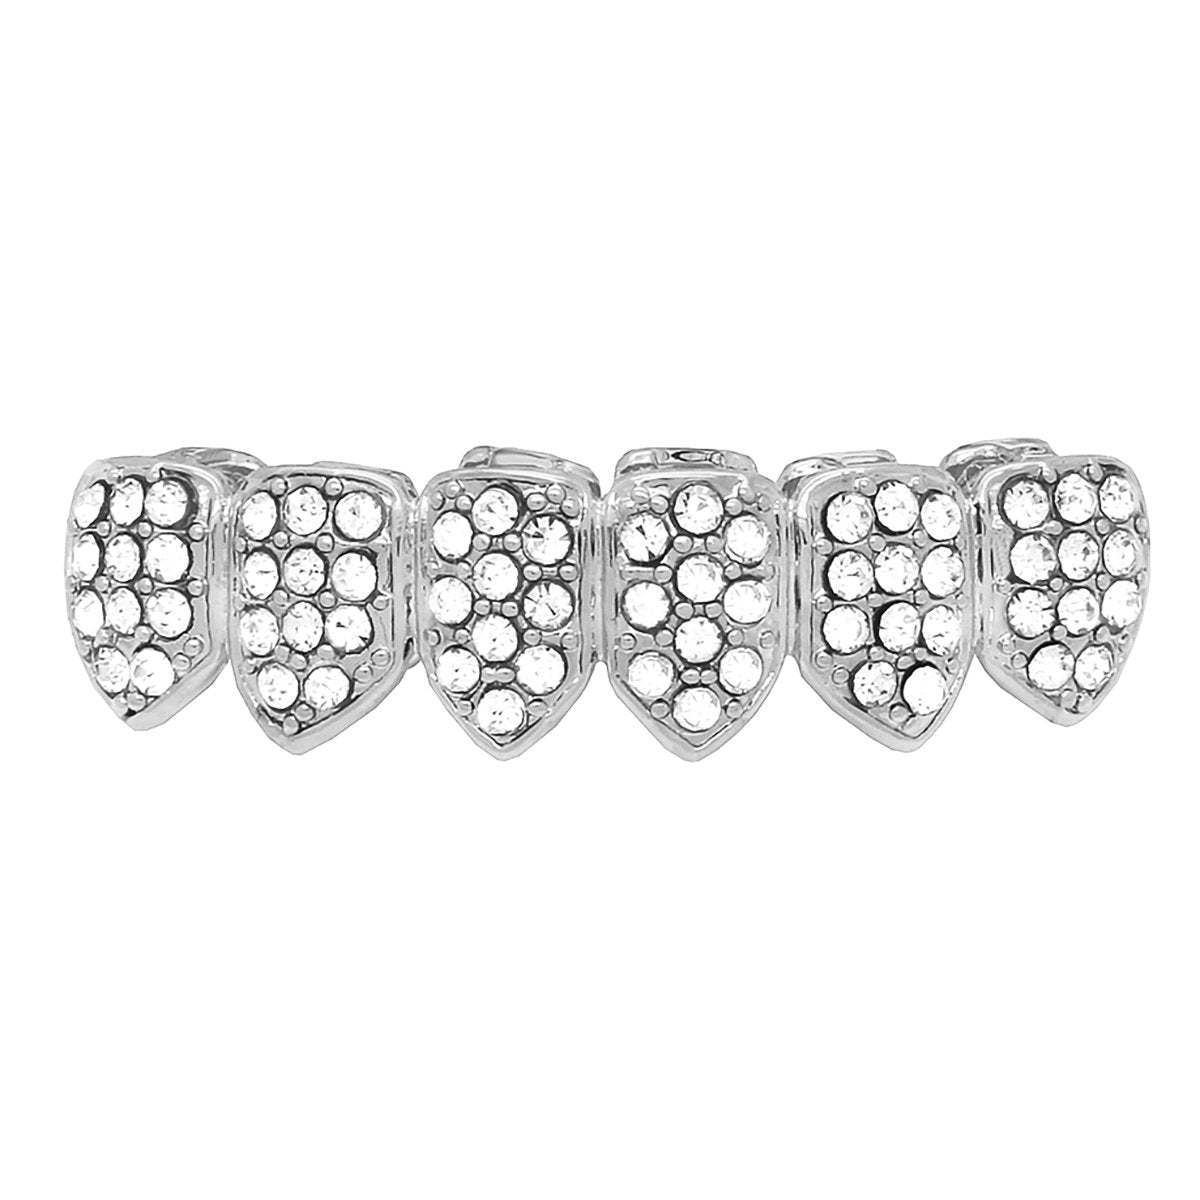 GRILLZ SET SILVER FULLY STONE